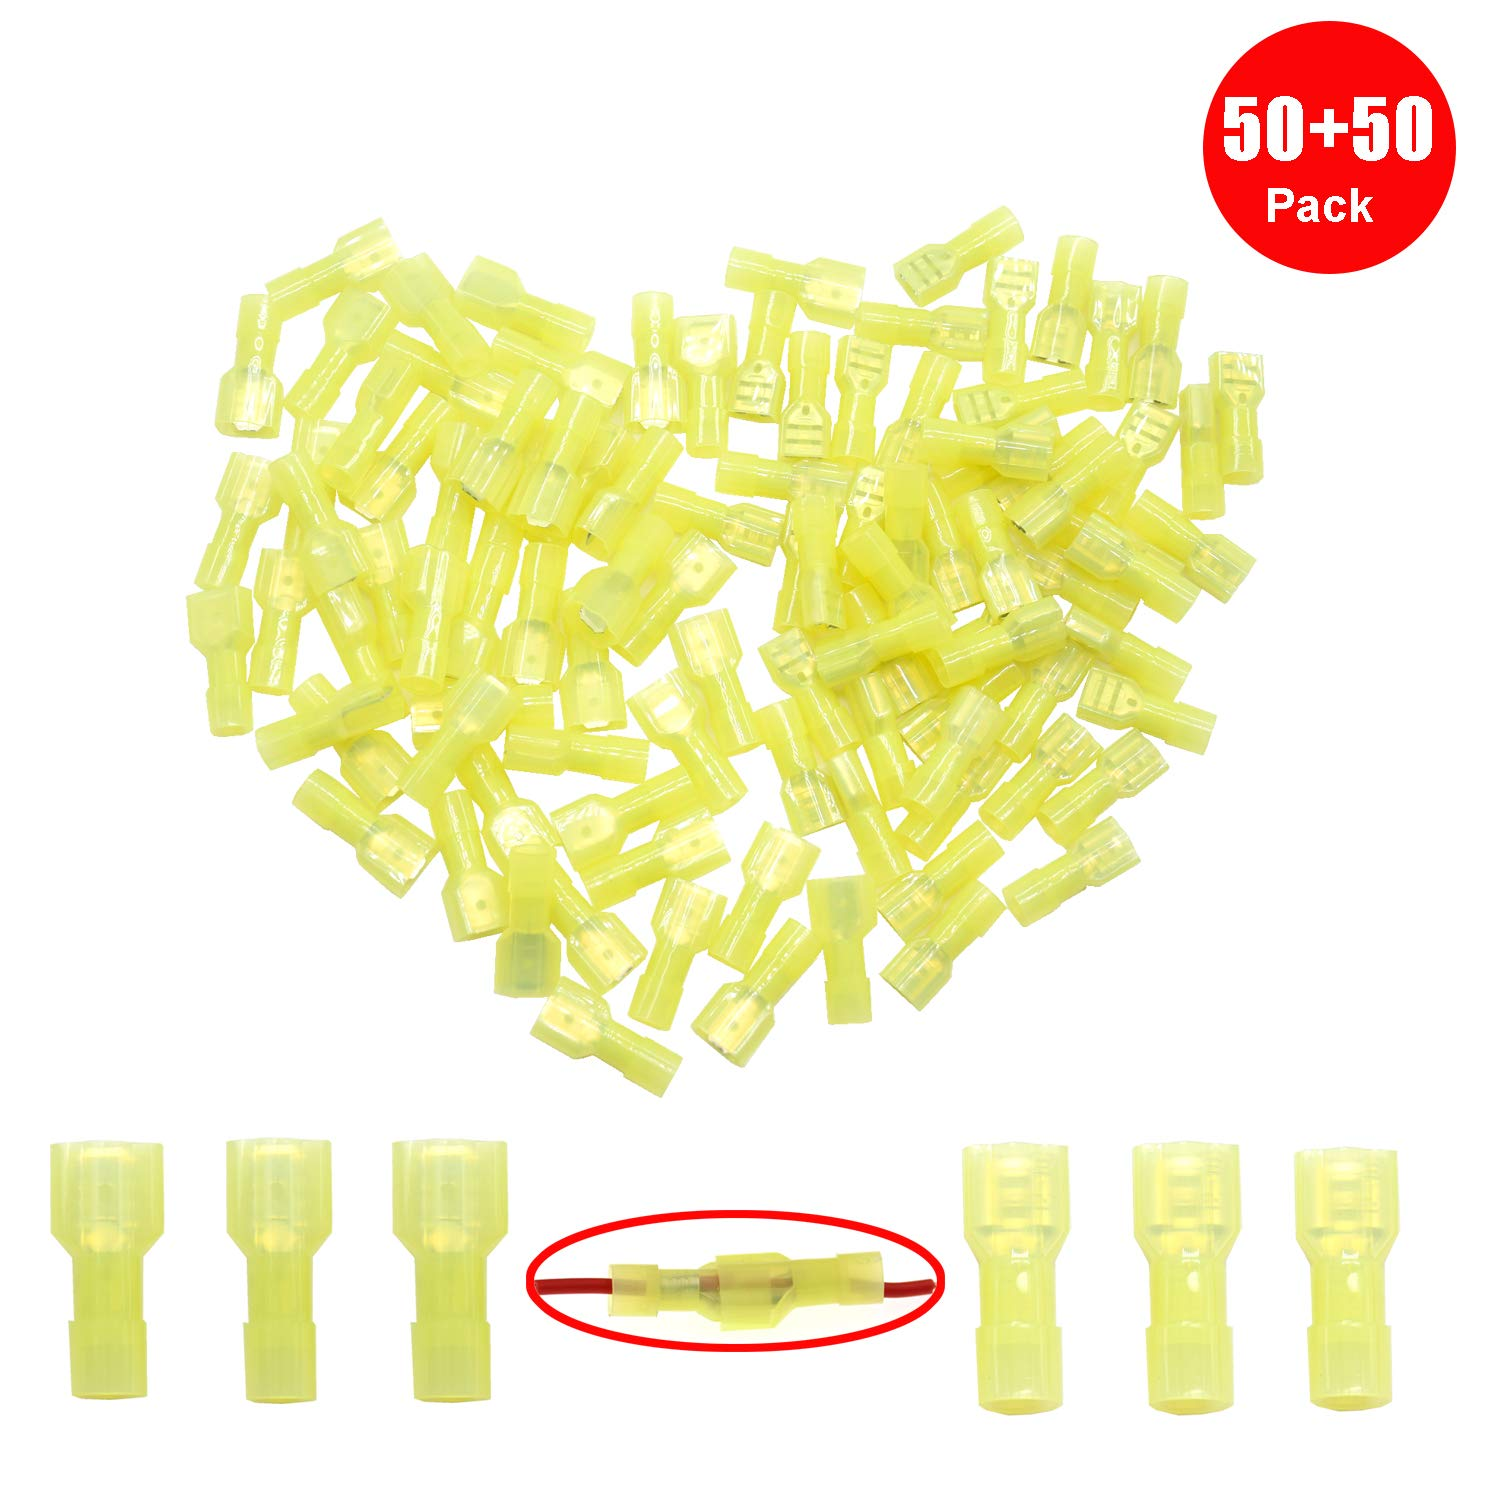 Yosawa 100-Pieces Nylon Fully Insulated Male//Female Spade Wire Crimp Connectors,Quick Disconnects Wire Terminals Connector Assortment Kit AWG 16-14 Yellow(NLGMY